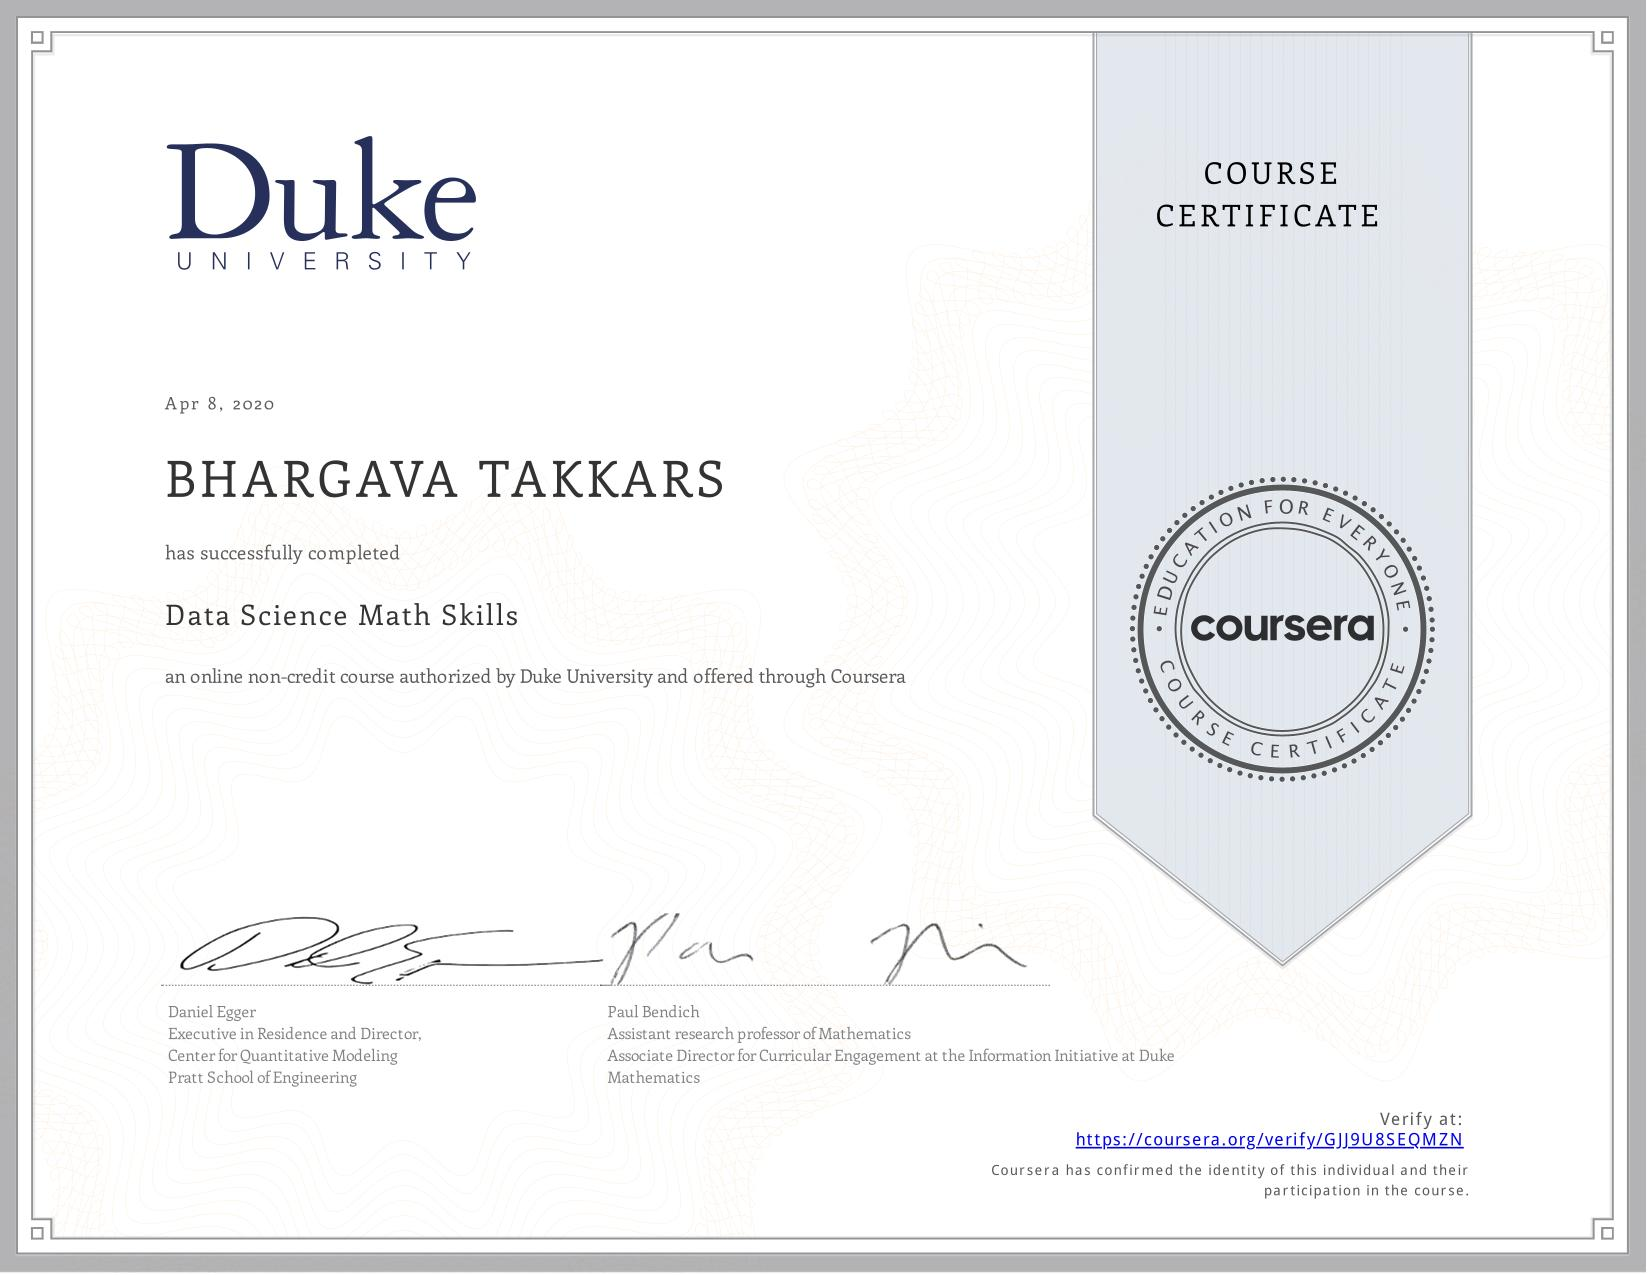 View certificate for Takkars Bhargava, Data Science Math Skills, an online non-credit course authorized by Duke University and offered through Coursera